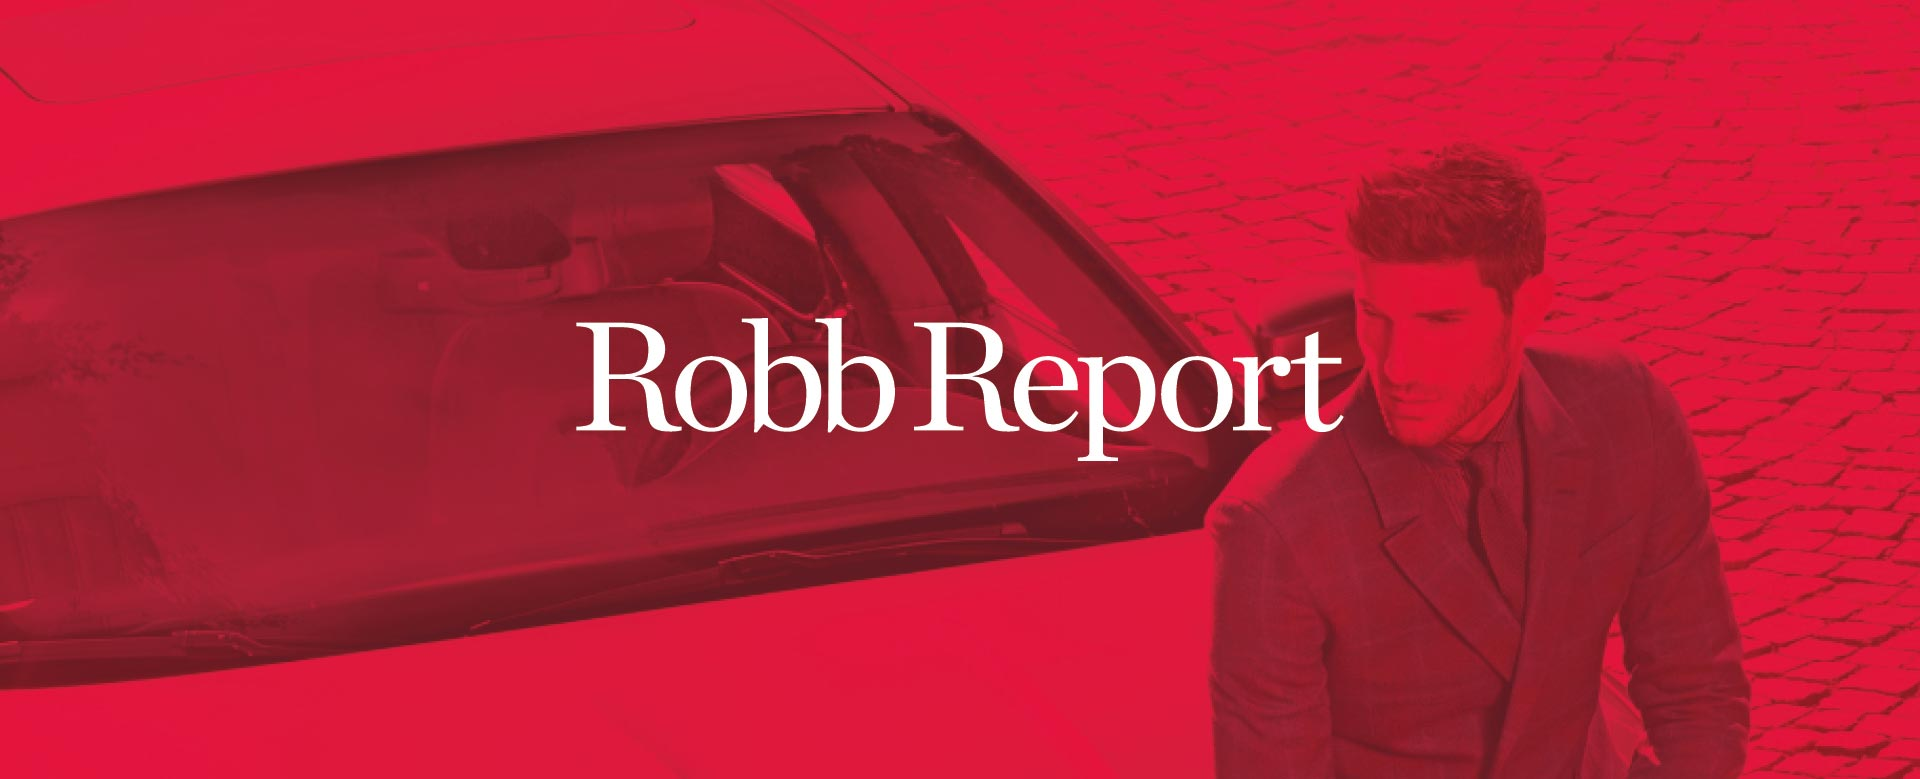 Robb Report Spagna